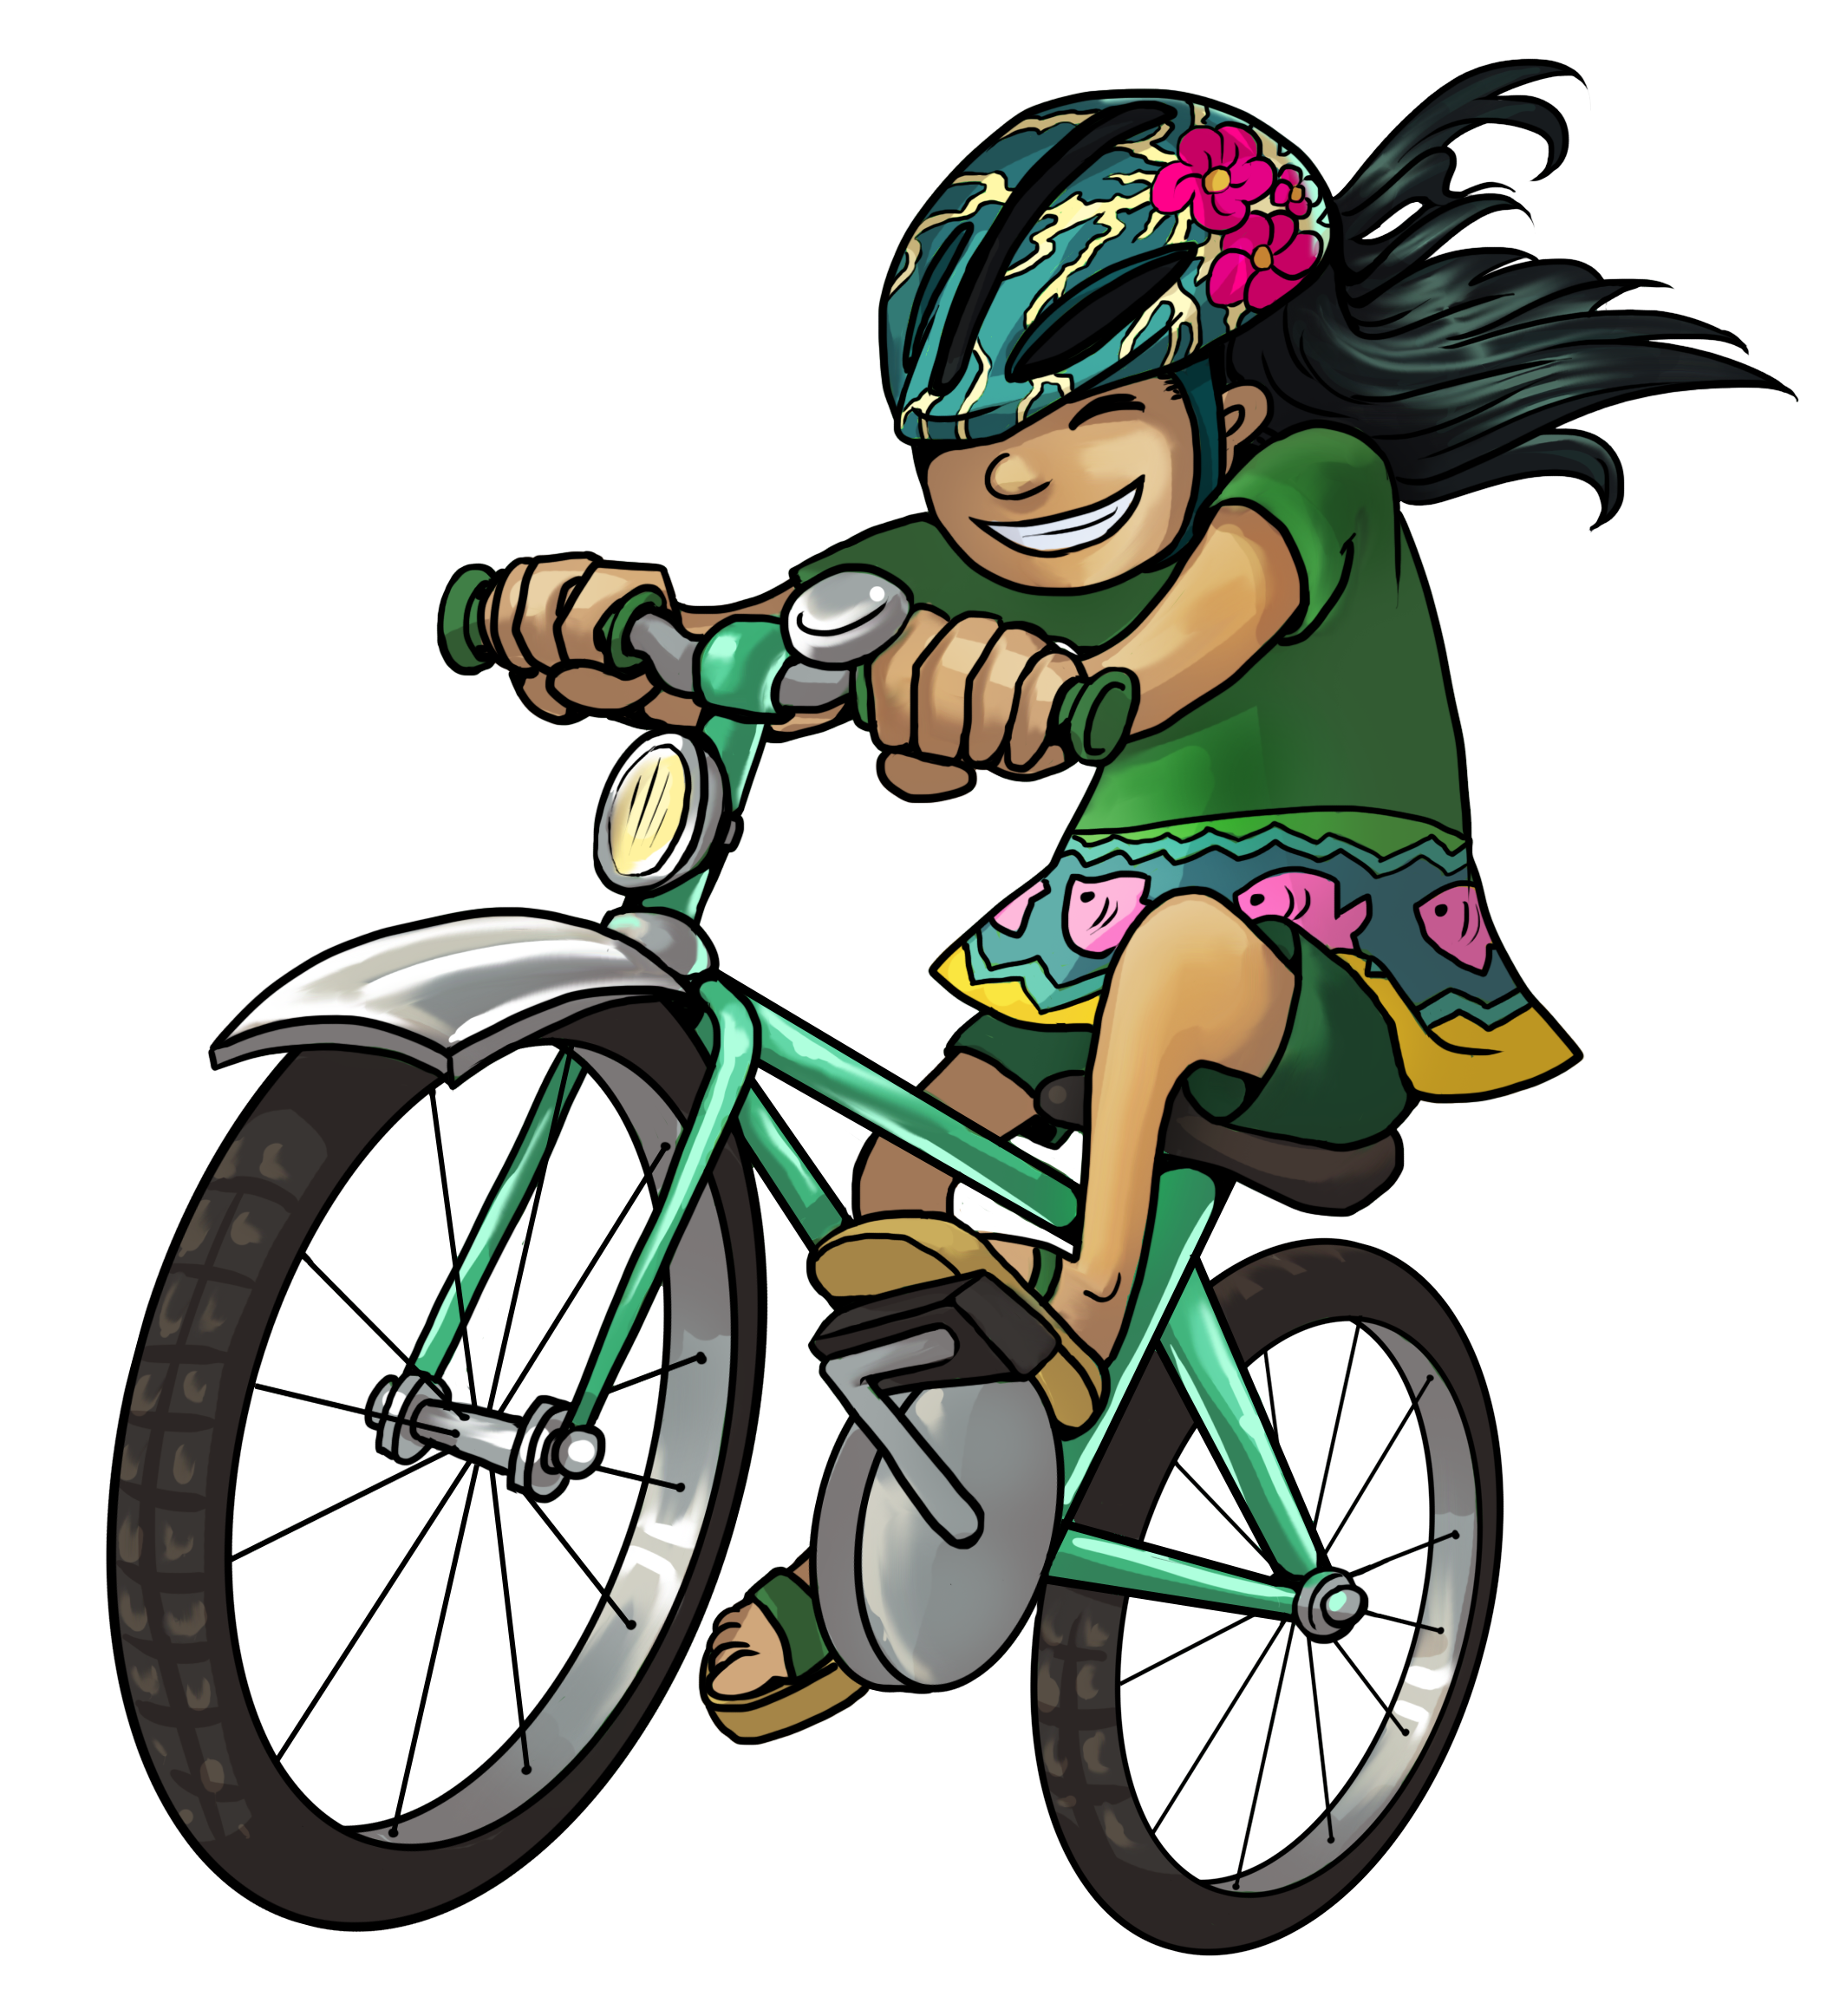 Illustration. A child is riding a bike.